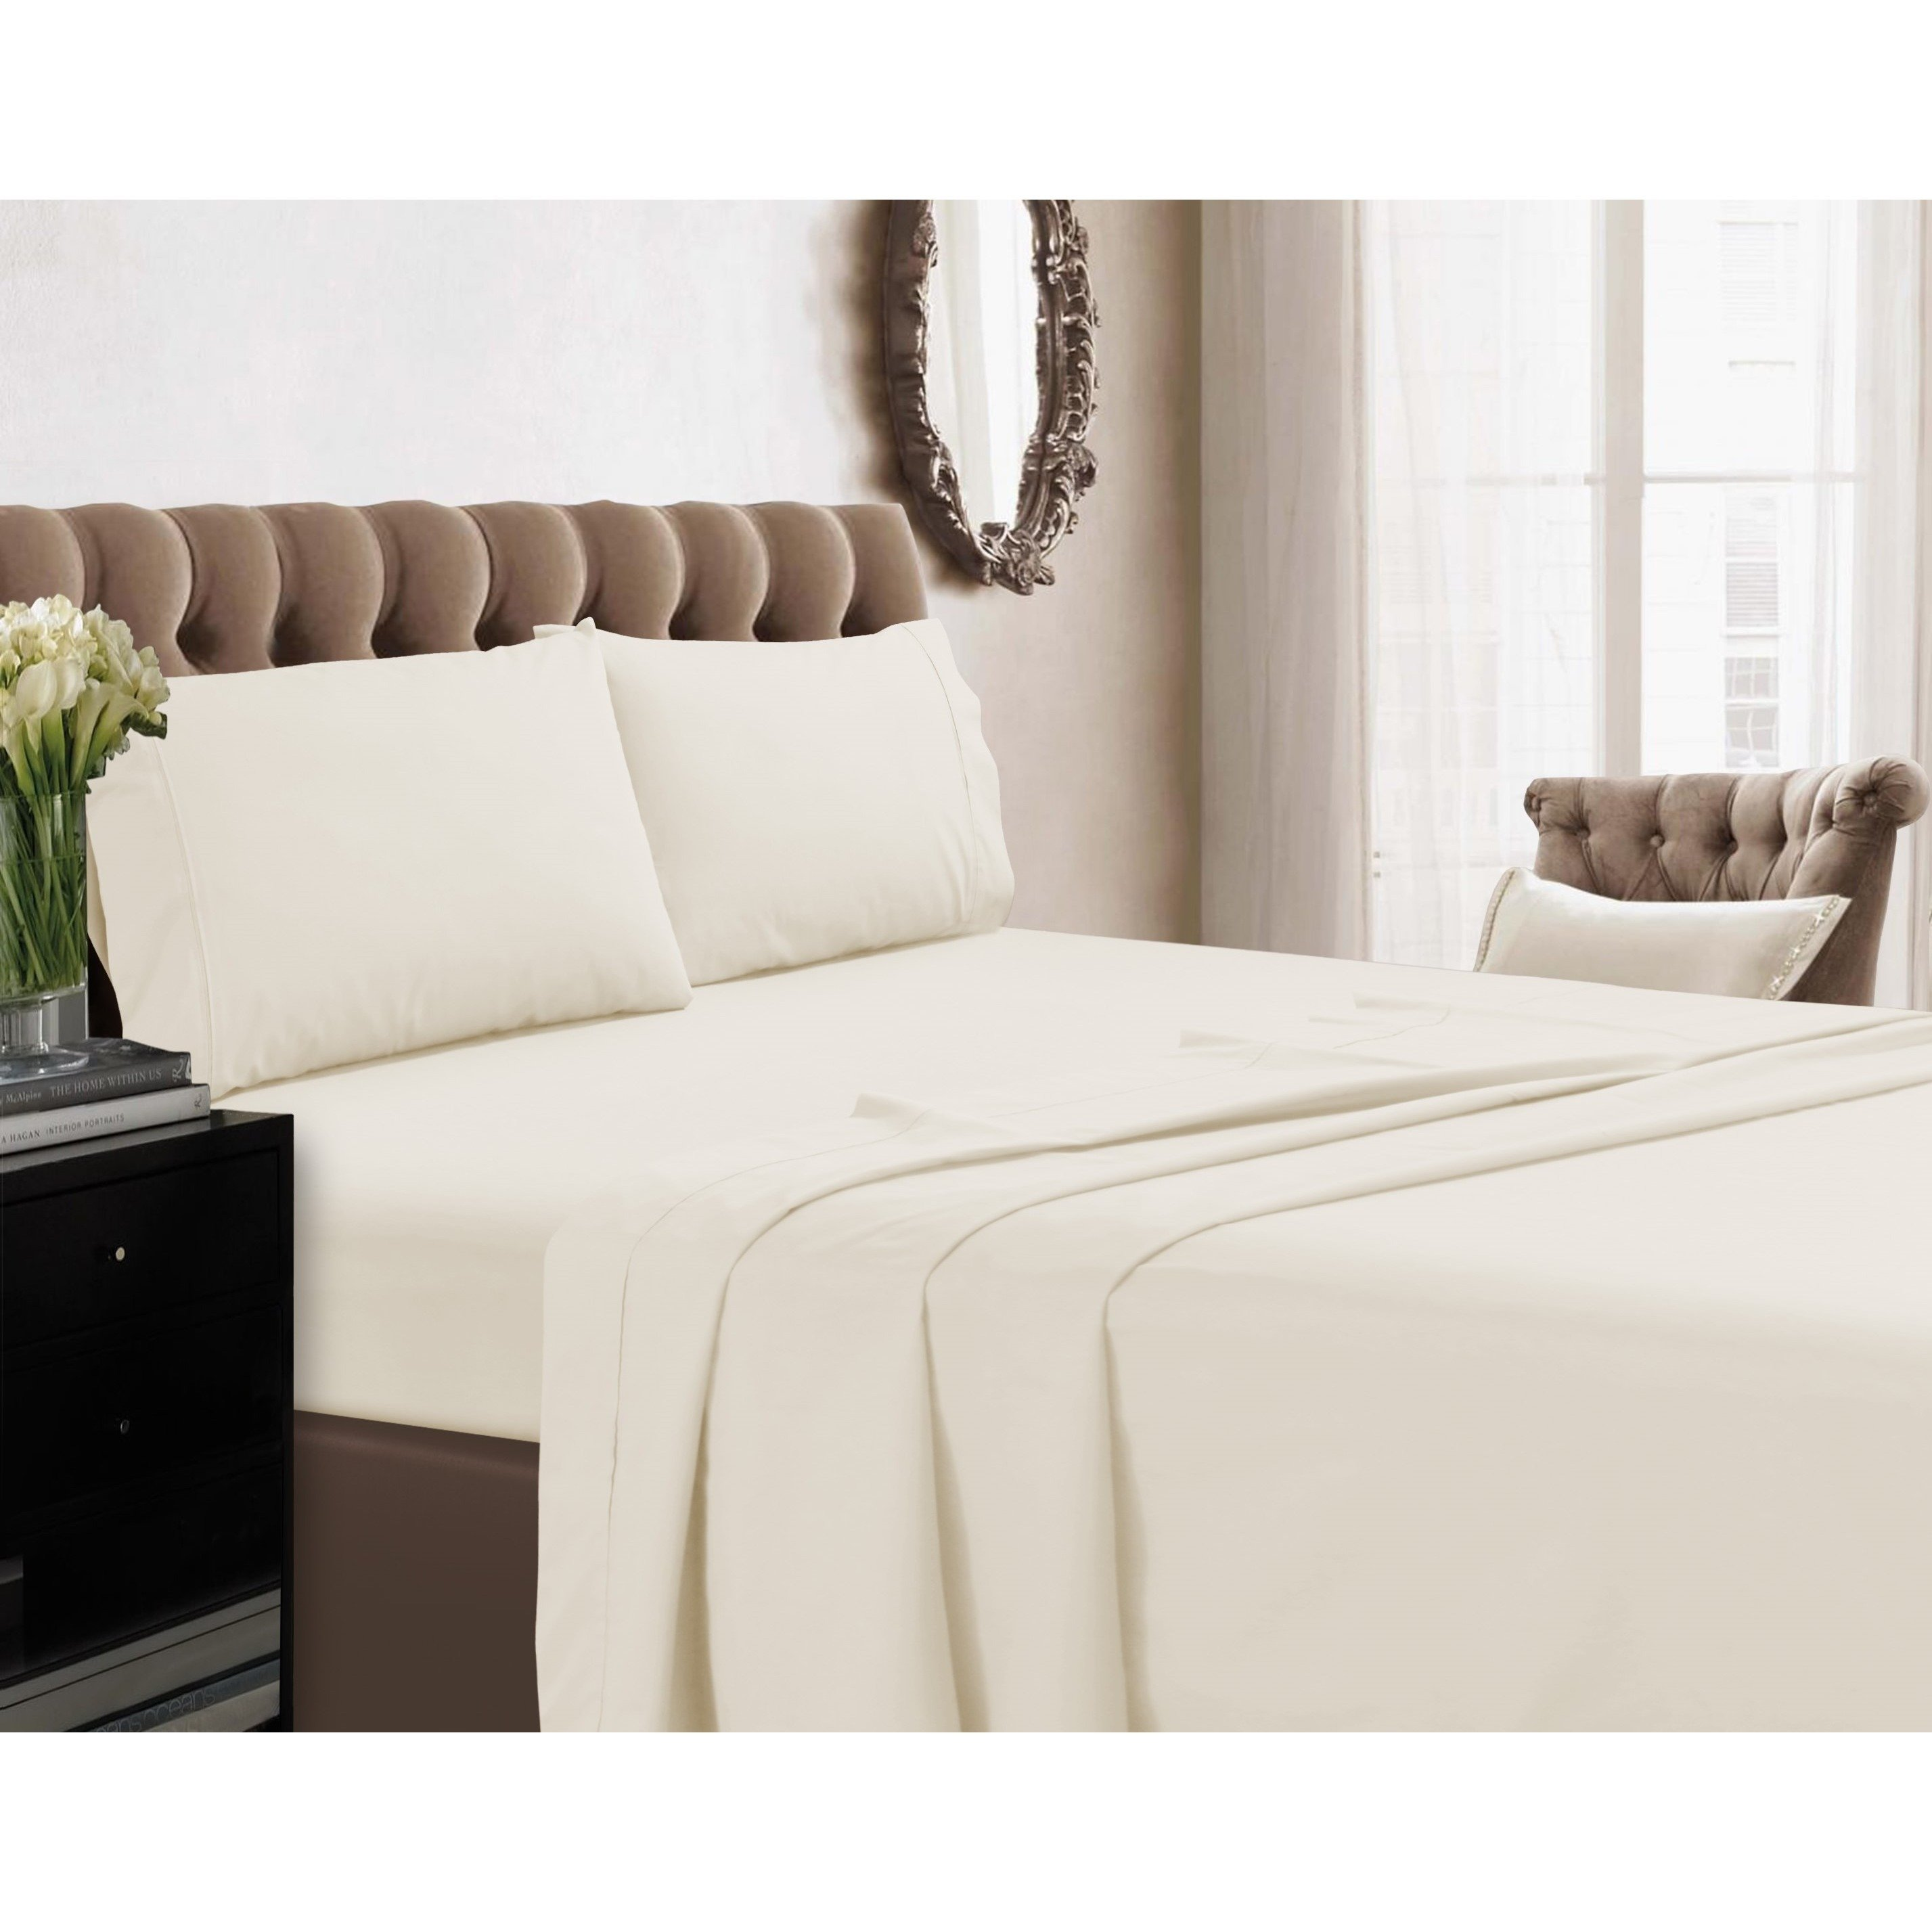 King Bed Set(Off White)Earthing /Grounding with 15″ Deep ...